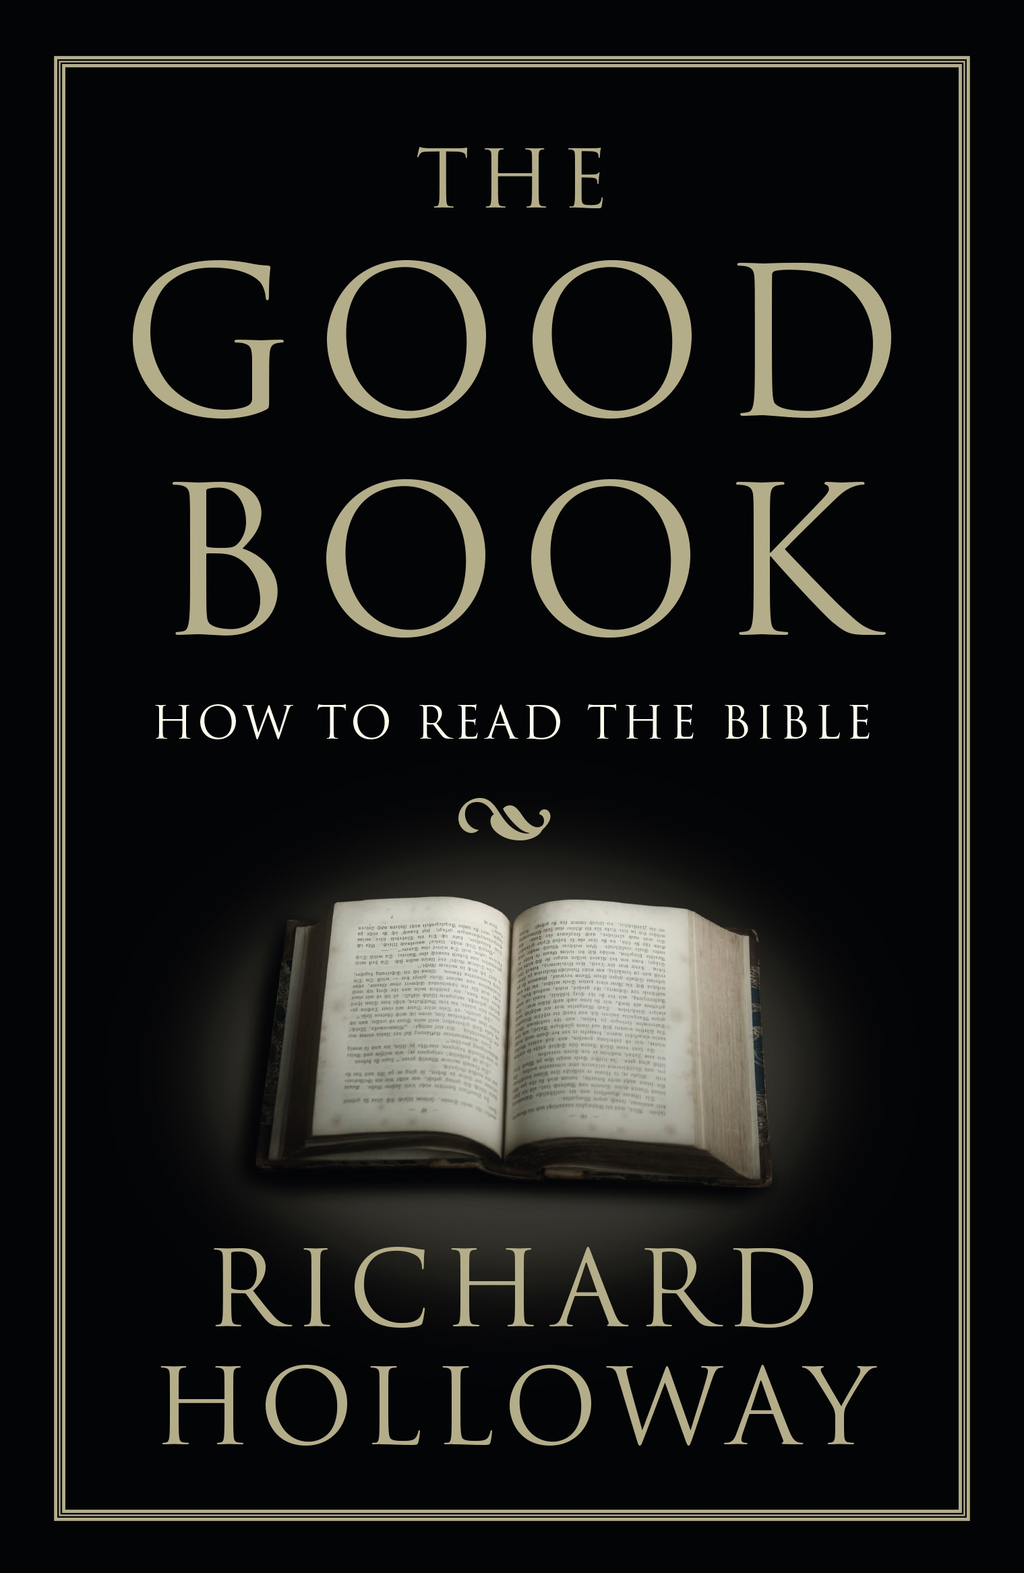 The Good Book How to Read the Bible